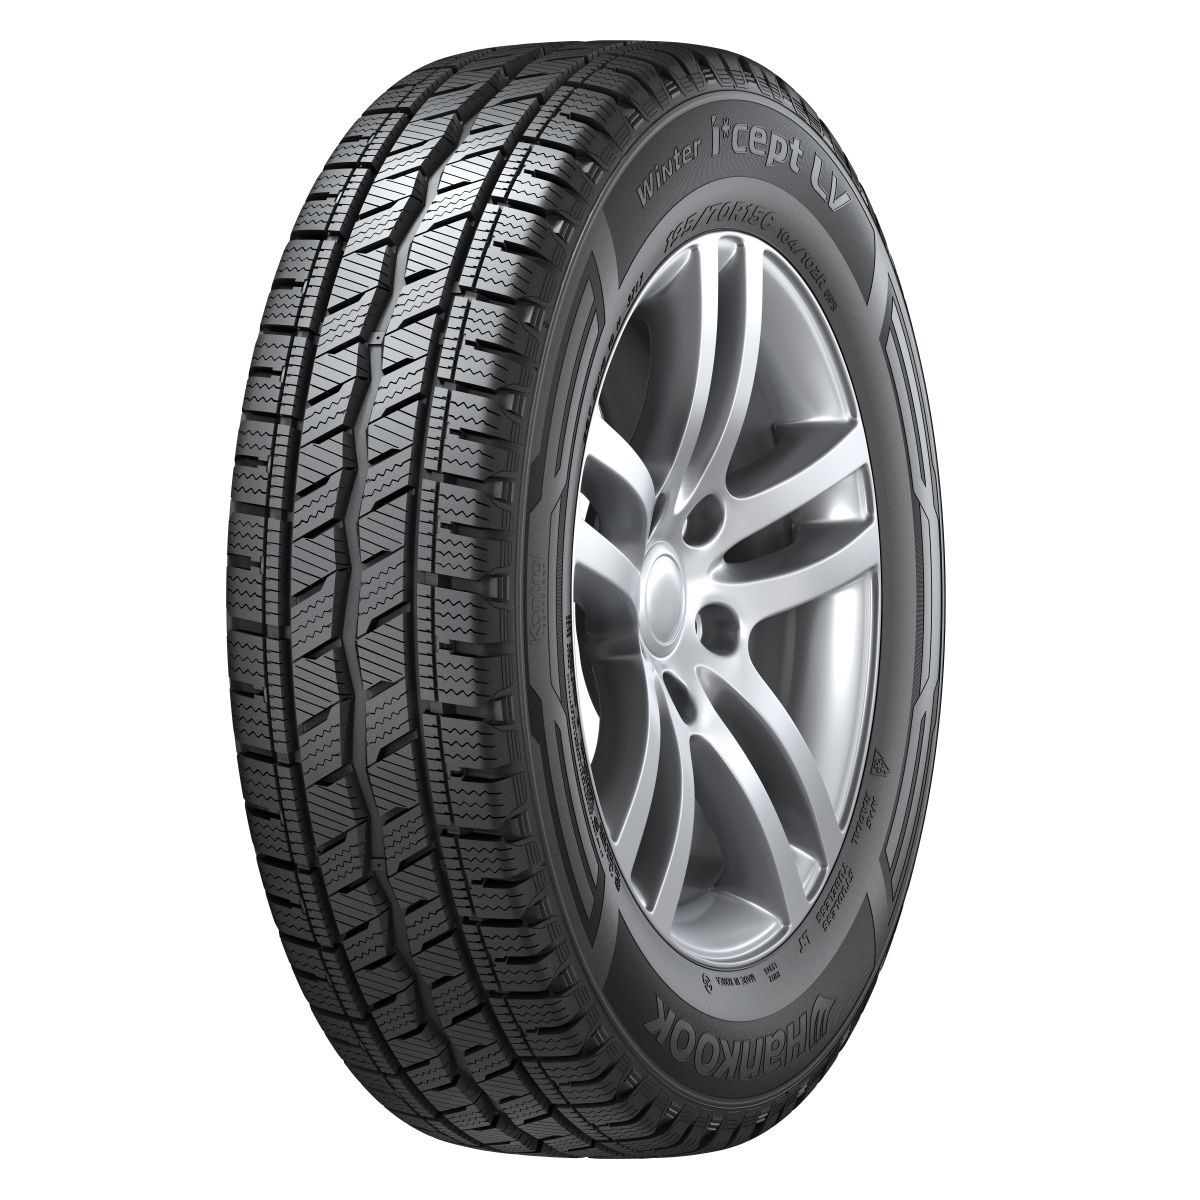 Gomme Nuove Hankook 225/65 R16C 112R ICEPT LV RW-12 pneumatici nuovi Invernale